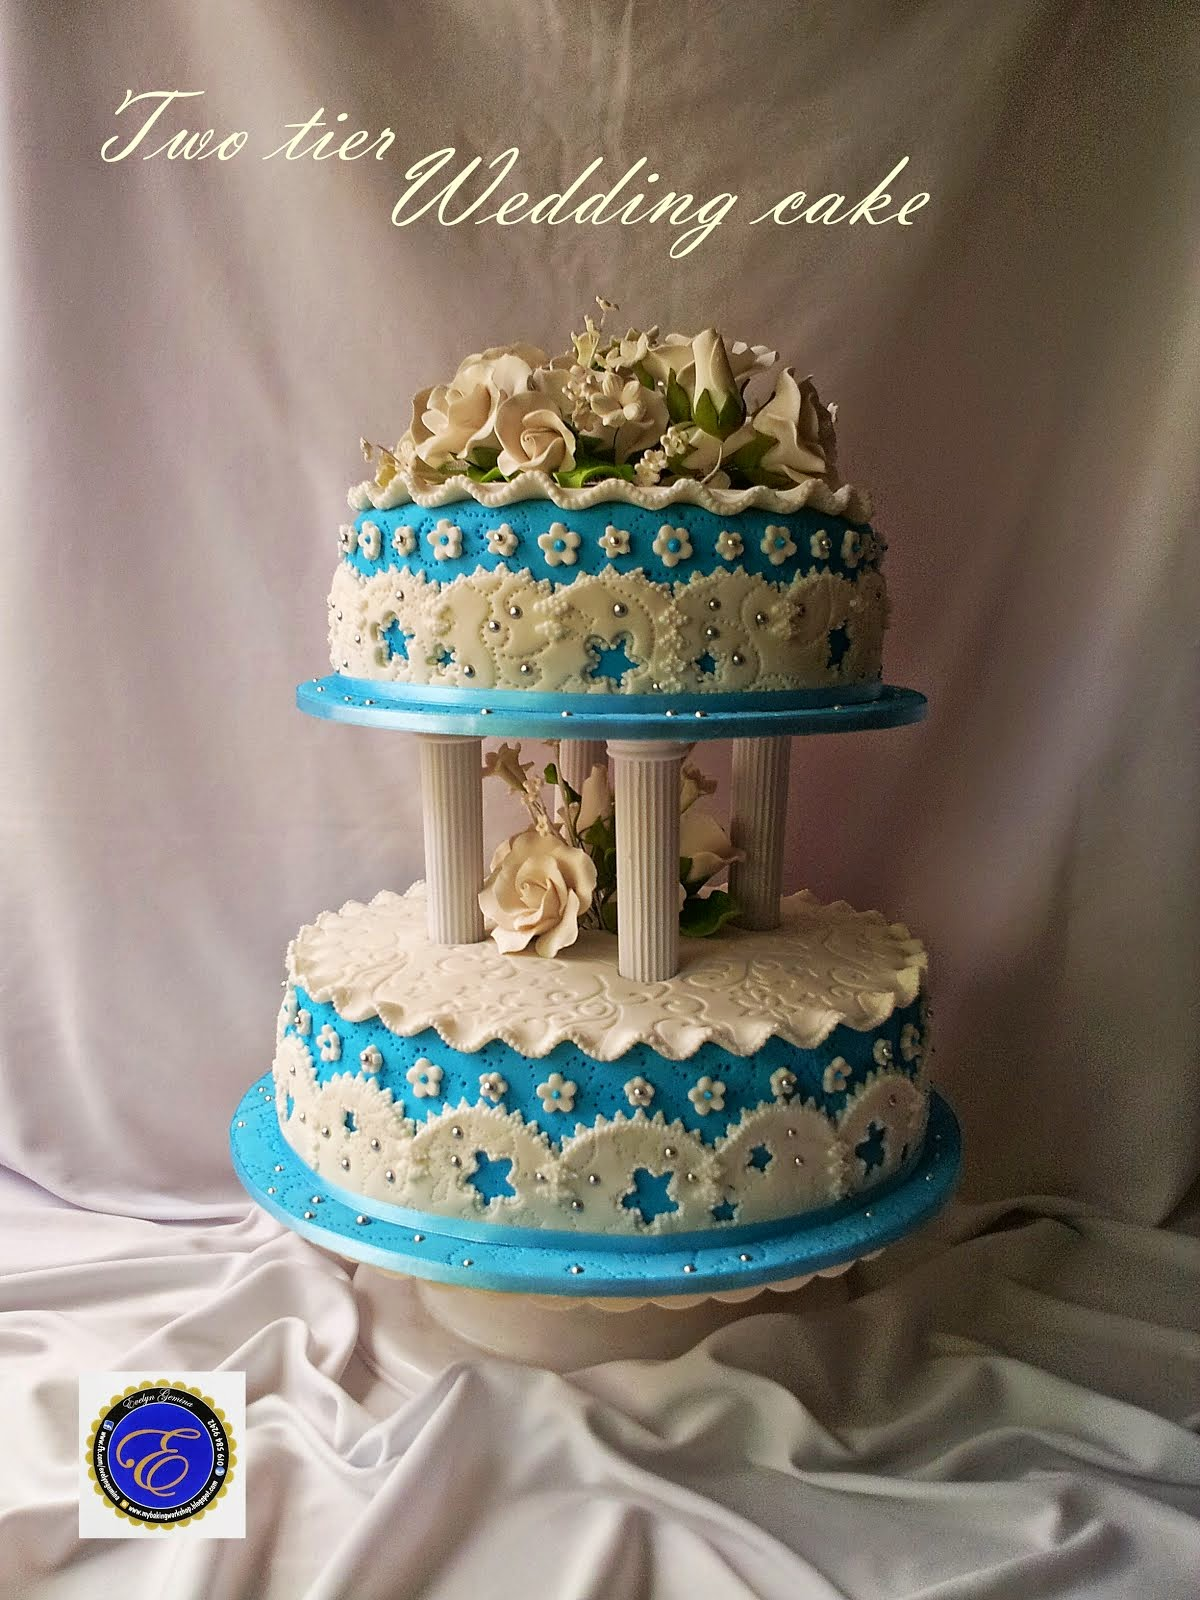 Two tier Fondant Wedding Cake (White & blue)